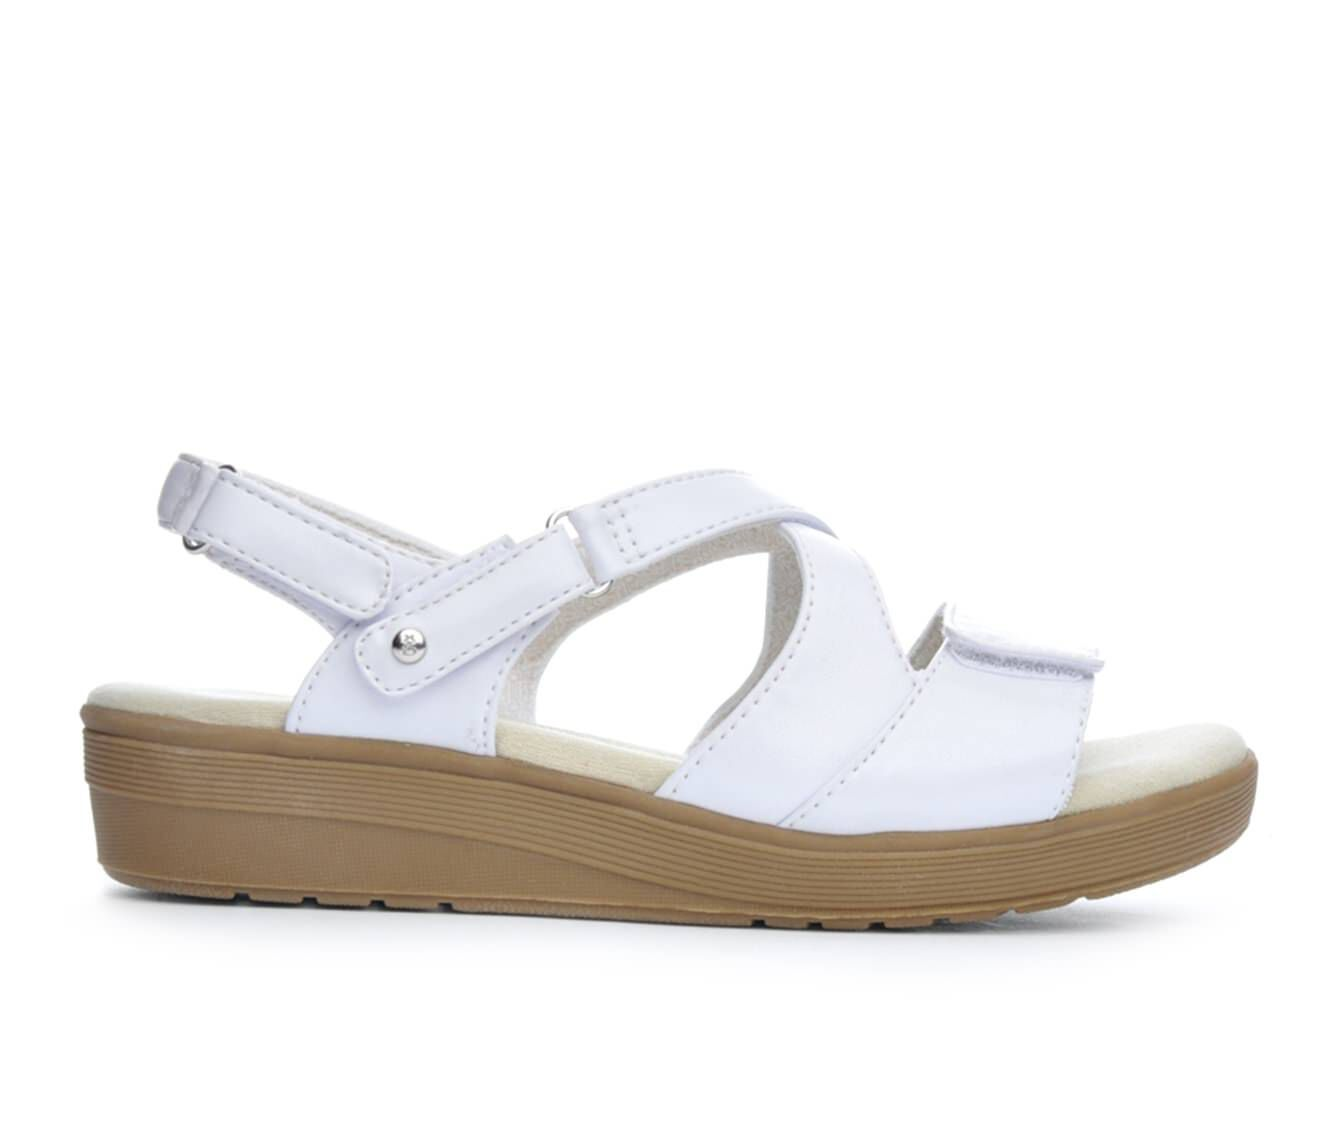 Women's Grasshoppers Cherry Wedge Sandals free shipping best place outlet clearance from china sale 2014 unisex O6gydPVK0